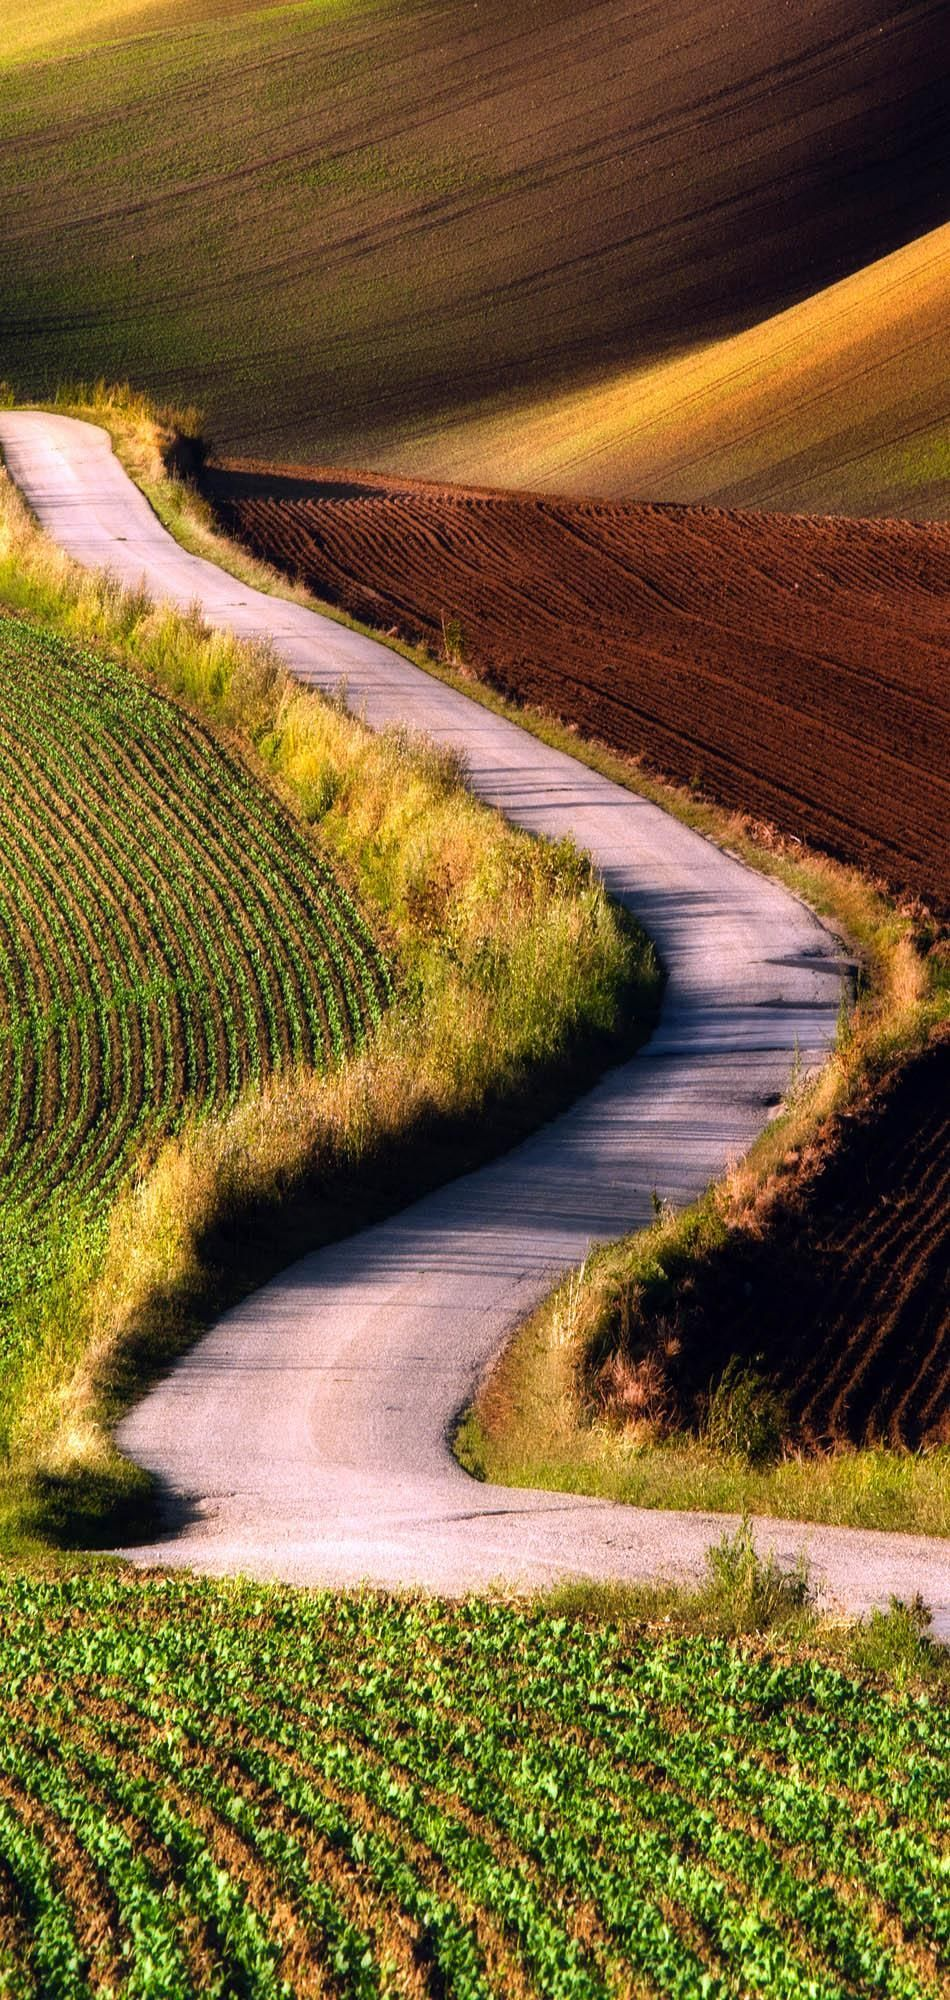 Scenic Road in Southern Moravia, Czech republic | 23 Roads you Have to Drive in Your Lifetime